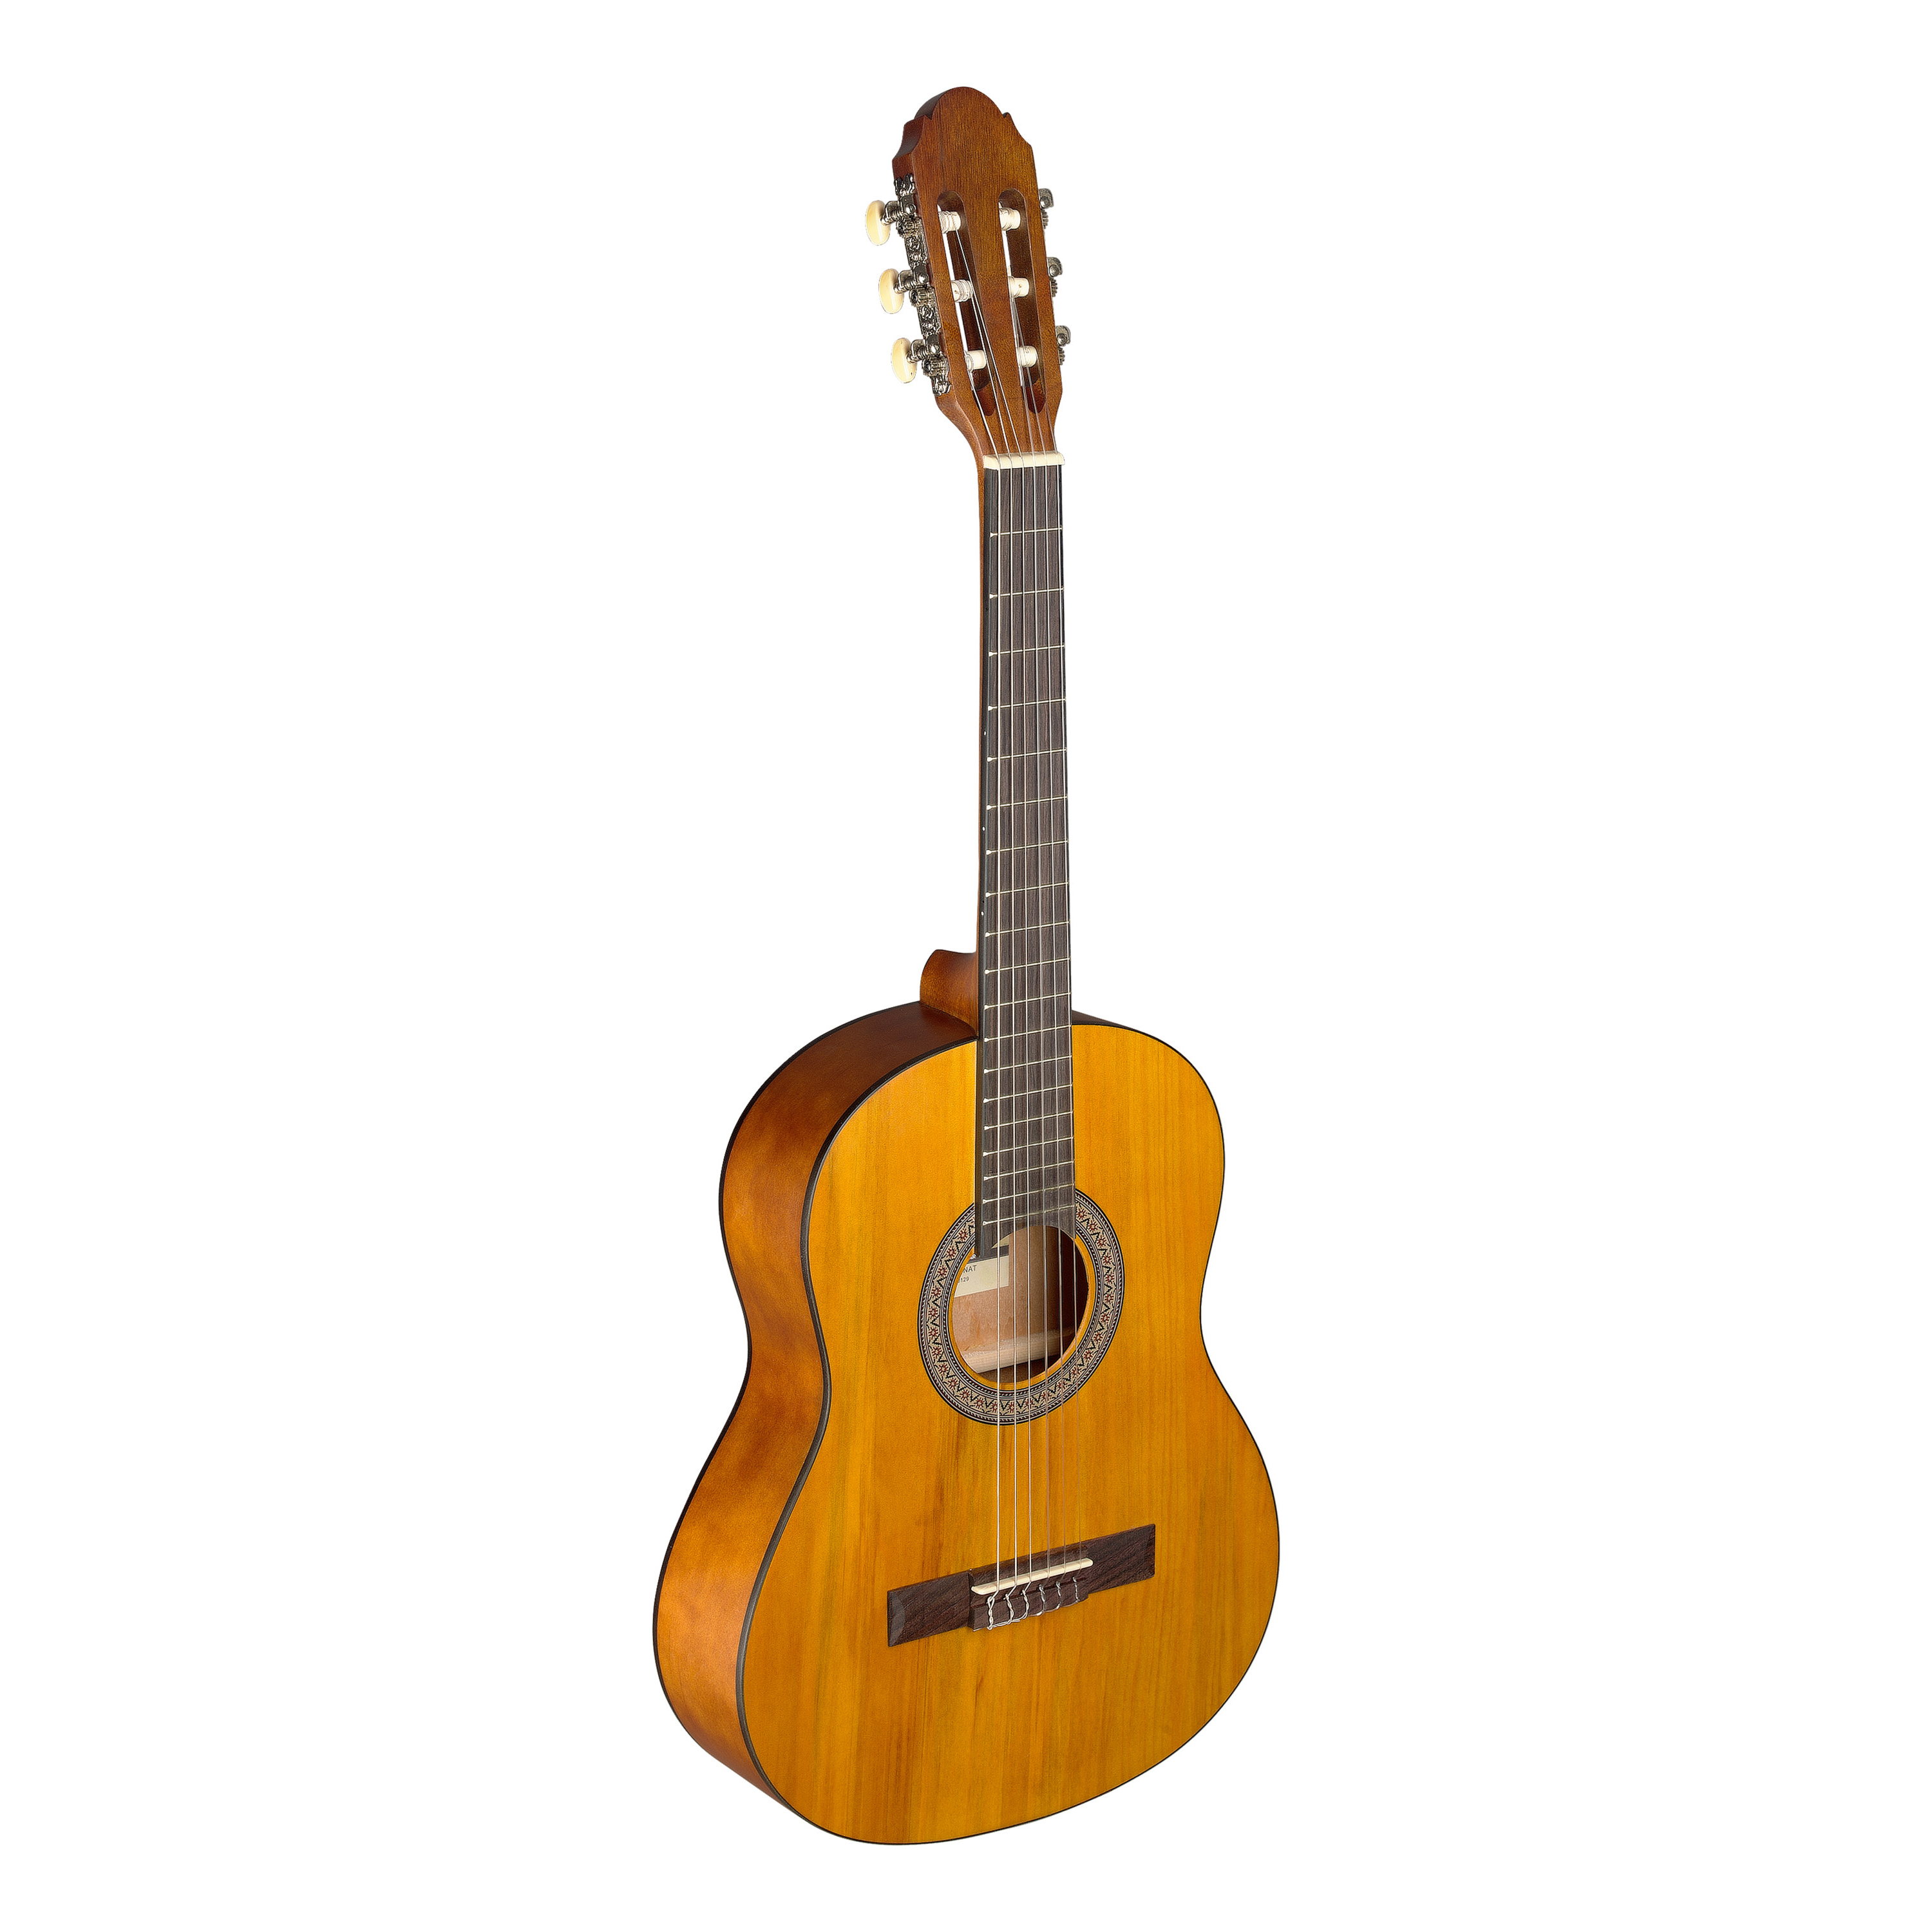 Stagg C430 M NAT 3/4 natural-coloured classical guitar with linden top